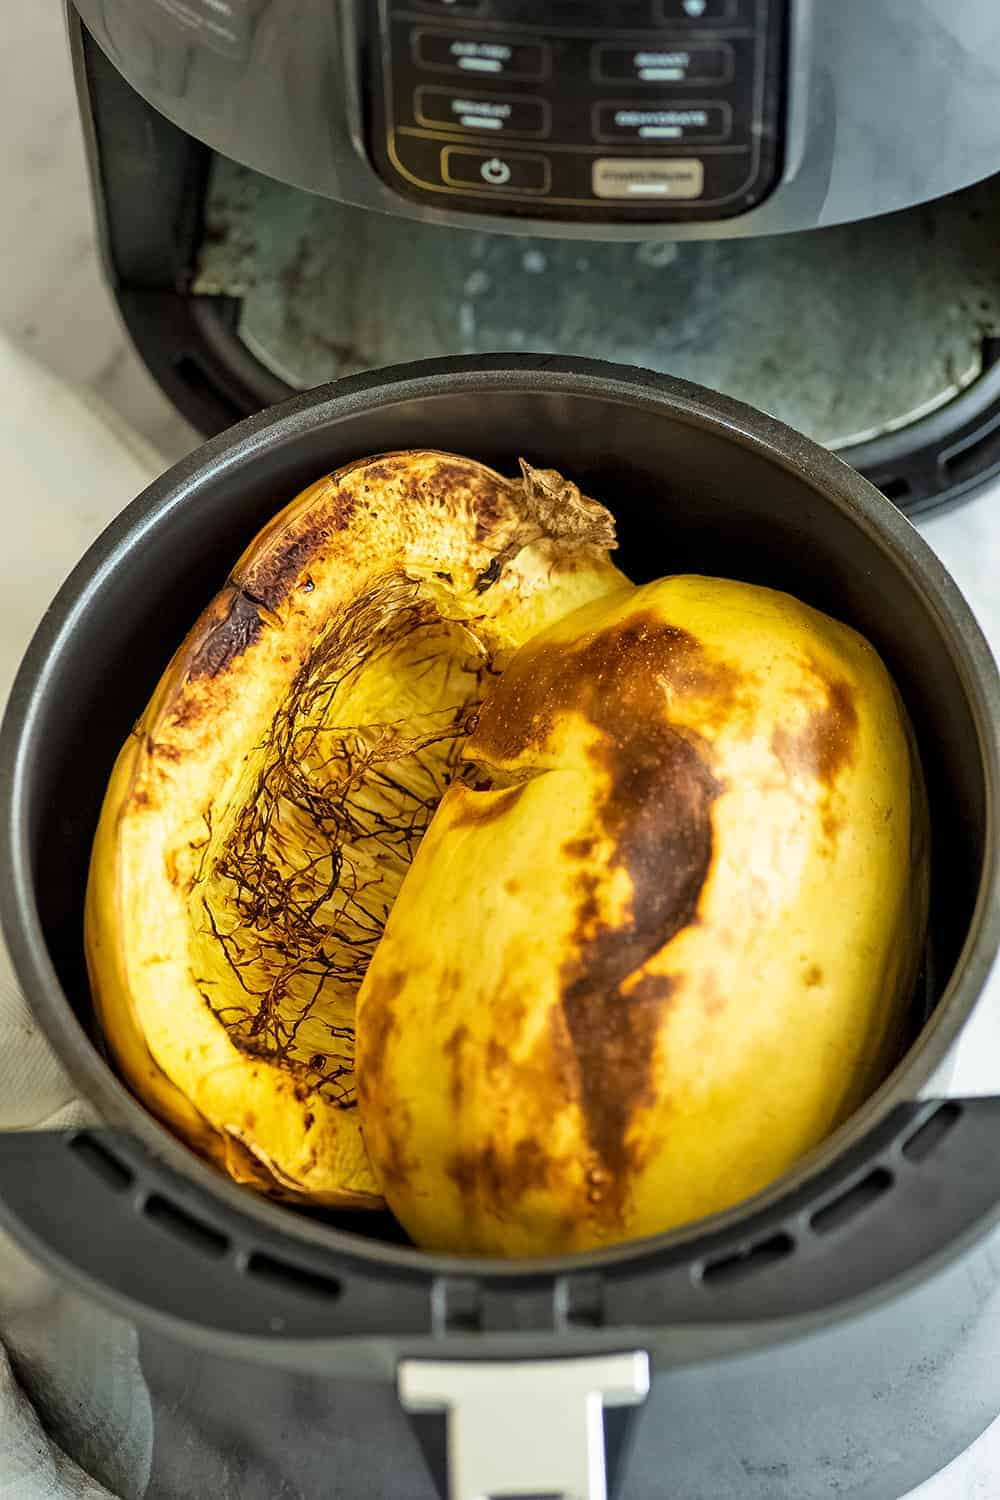 Spaghetti squash in air fryer basket after cooking.